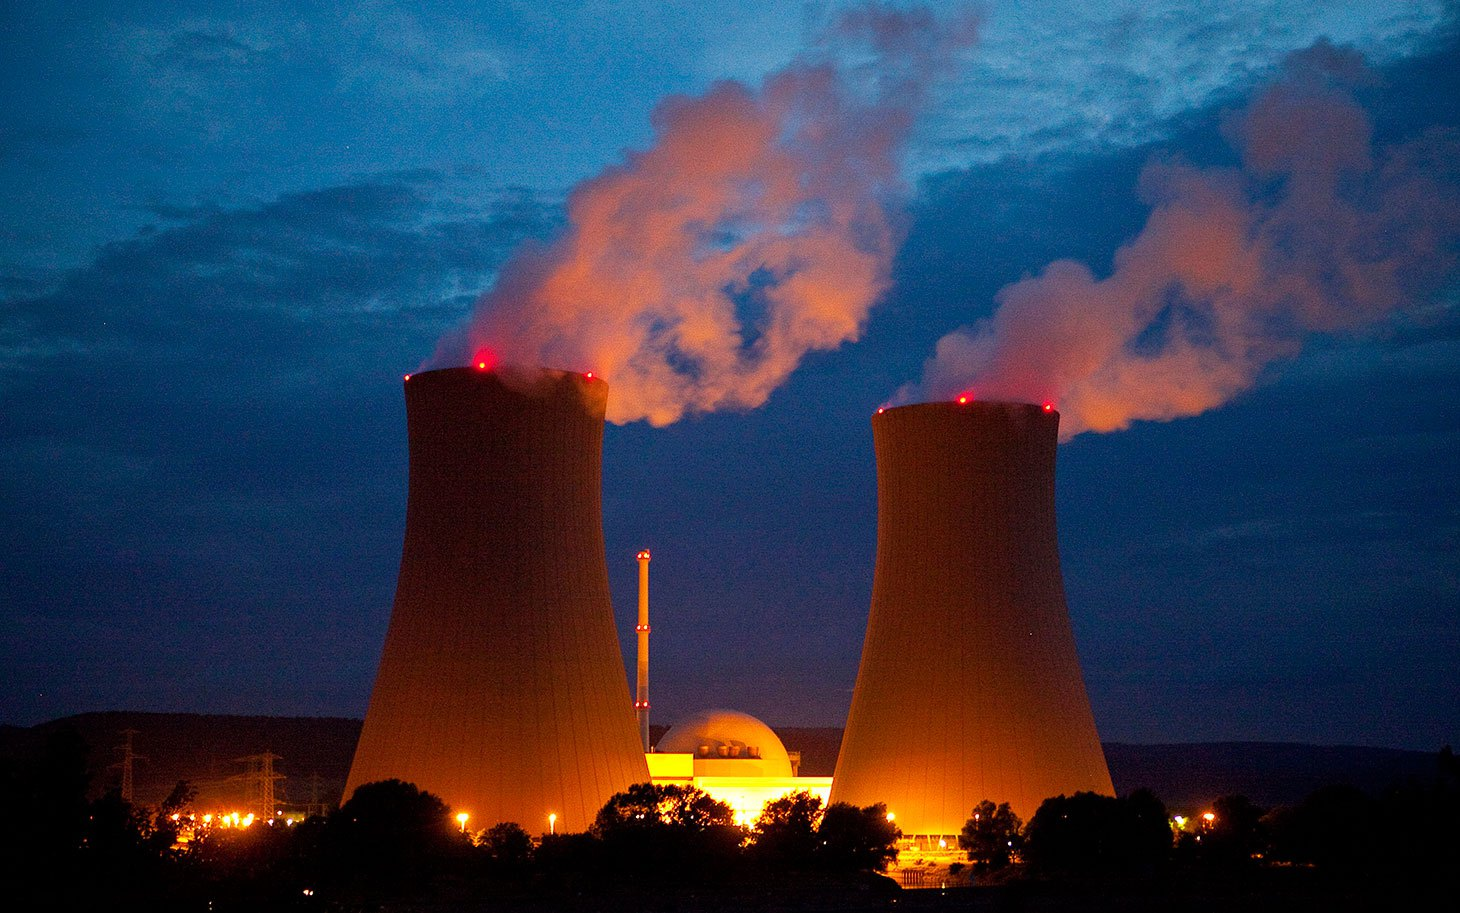 Cooling towers emit vapor into the night sky